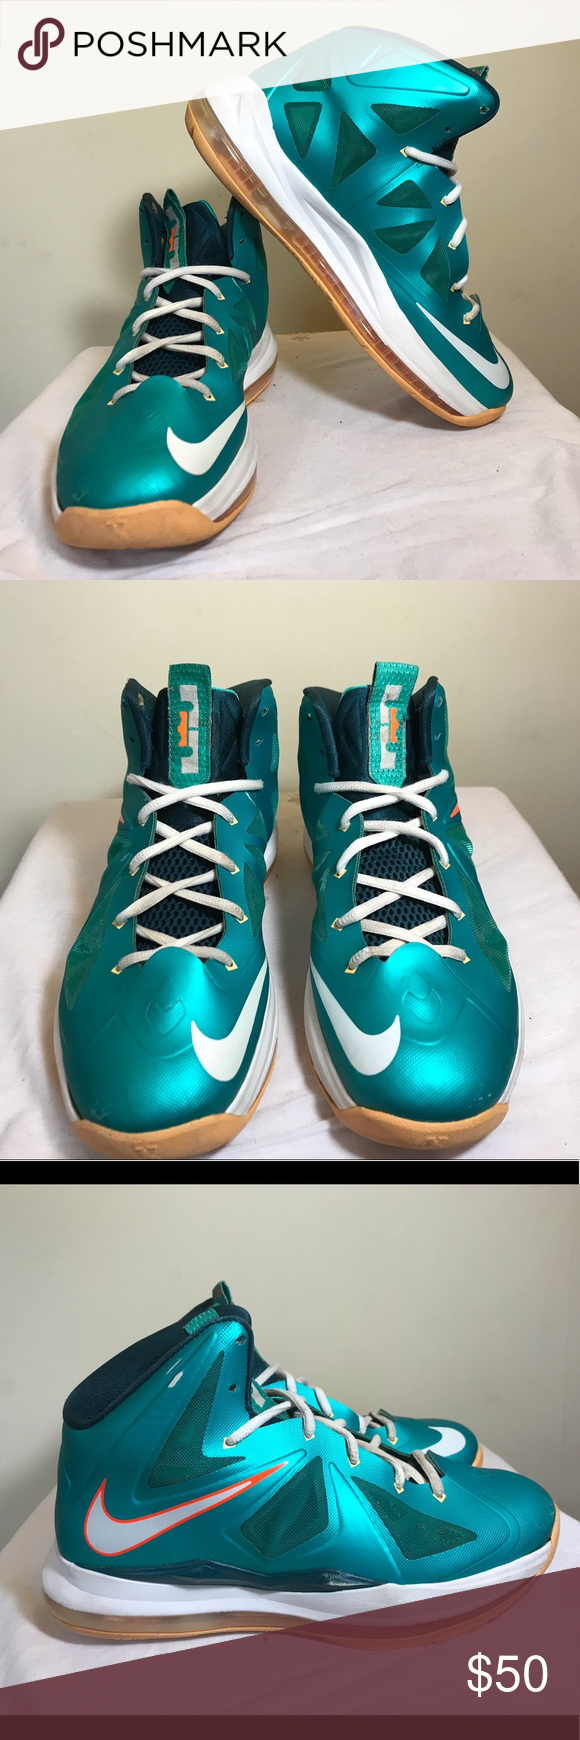 "5d8a8b19cae Nike Lebron 10 (GS) ""Miami Dolphins""   Please review all pictures ..."